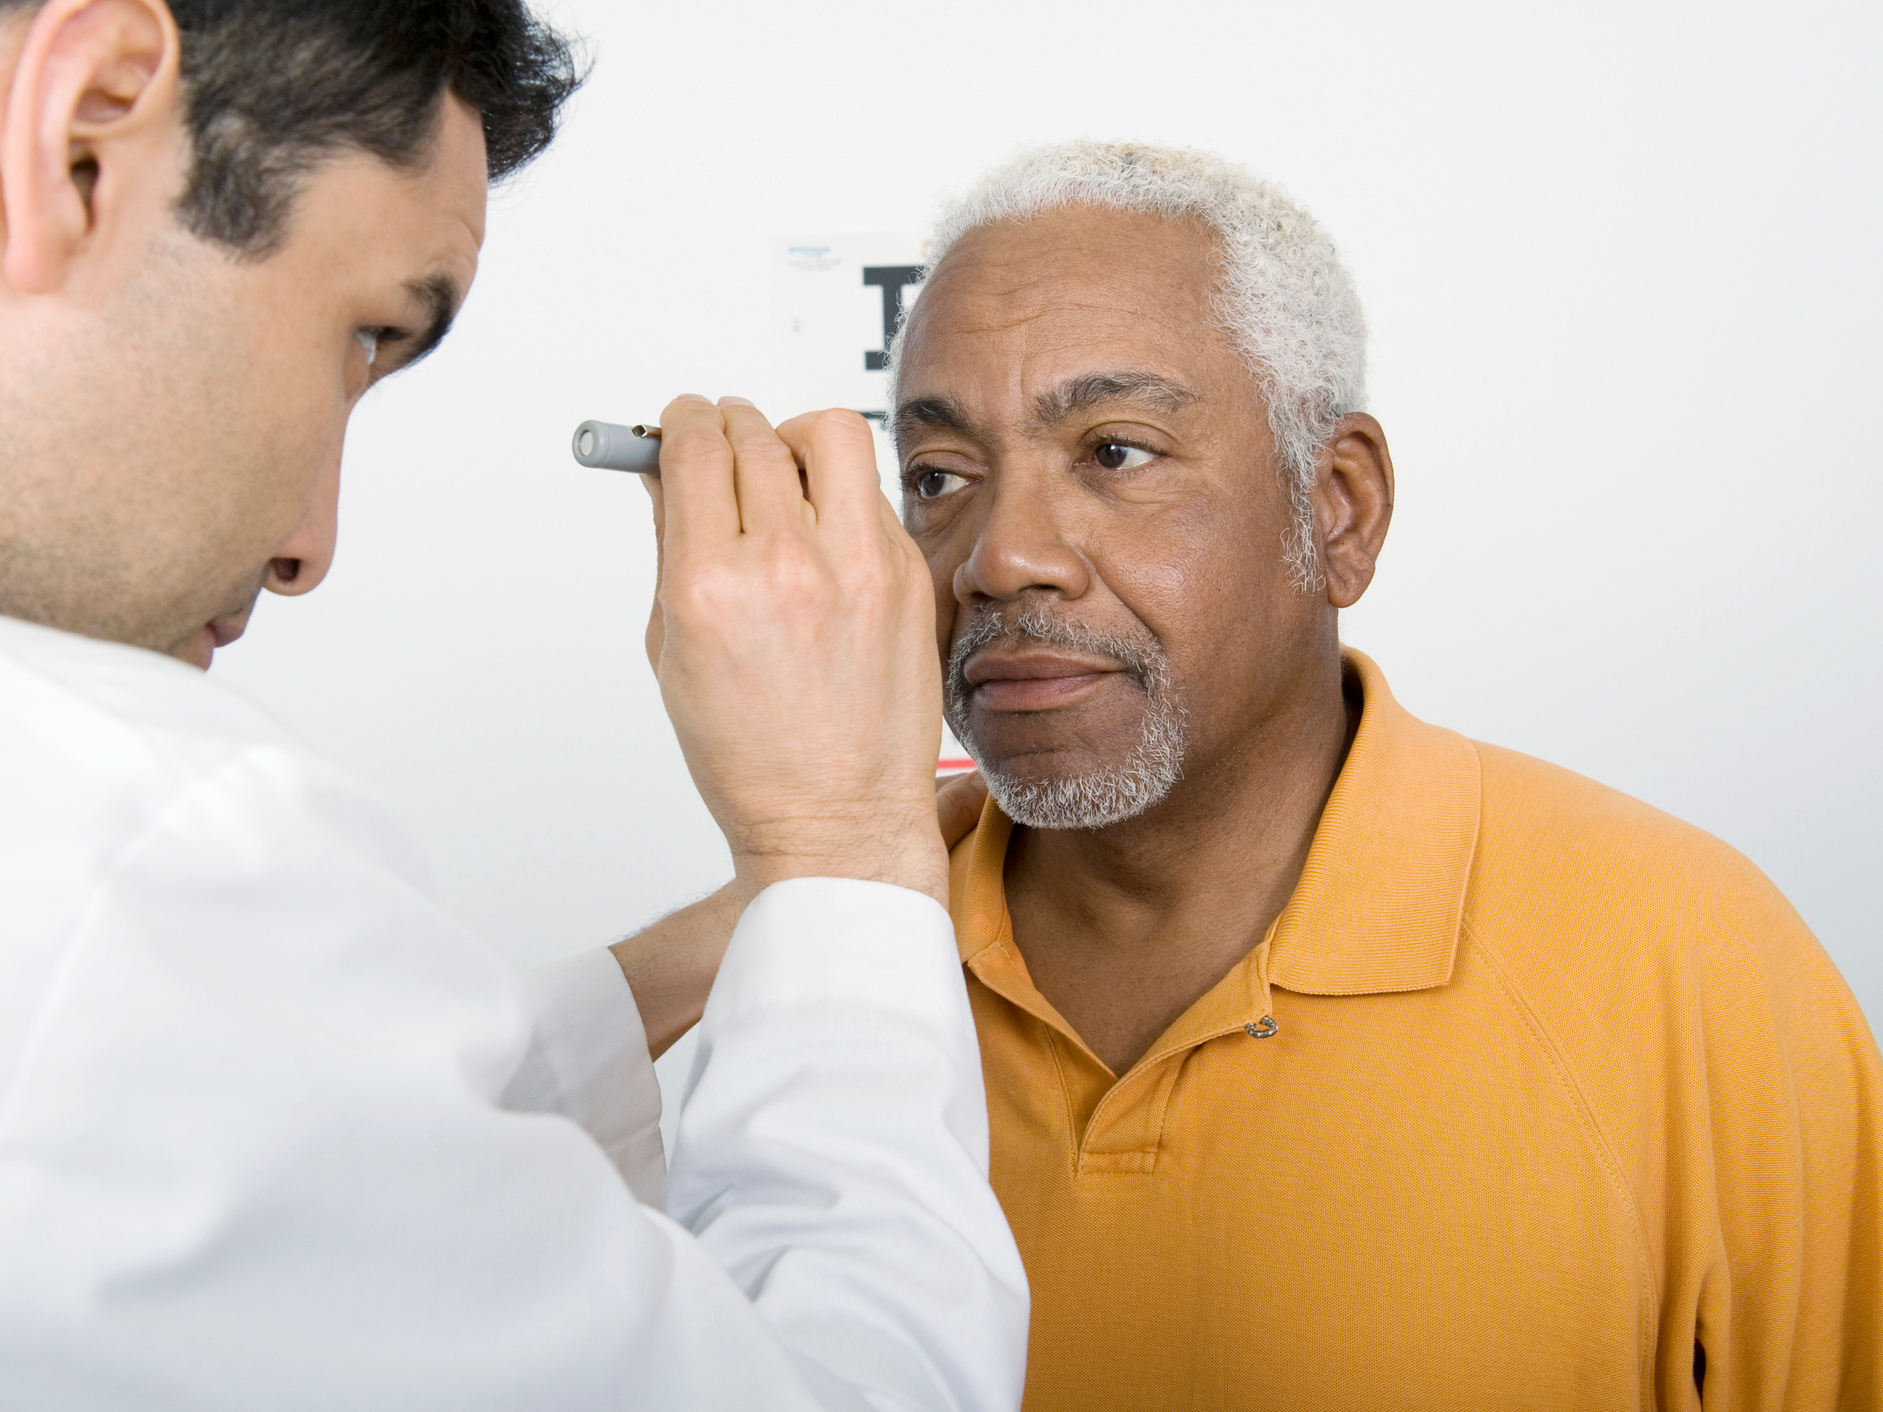 The invisible factor fueling glaucoma